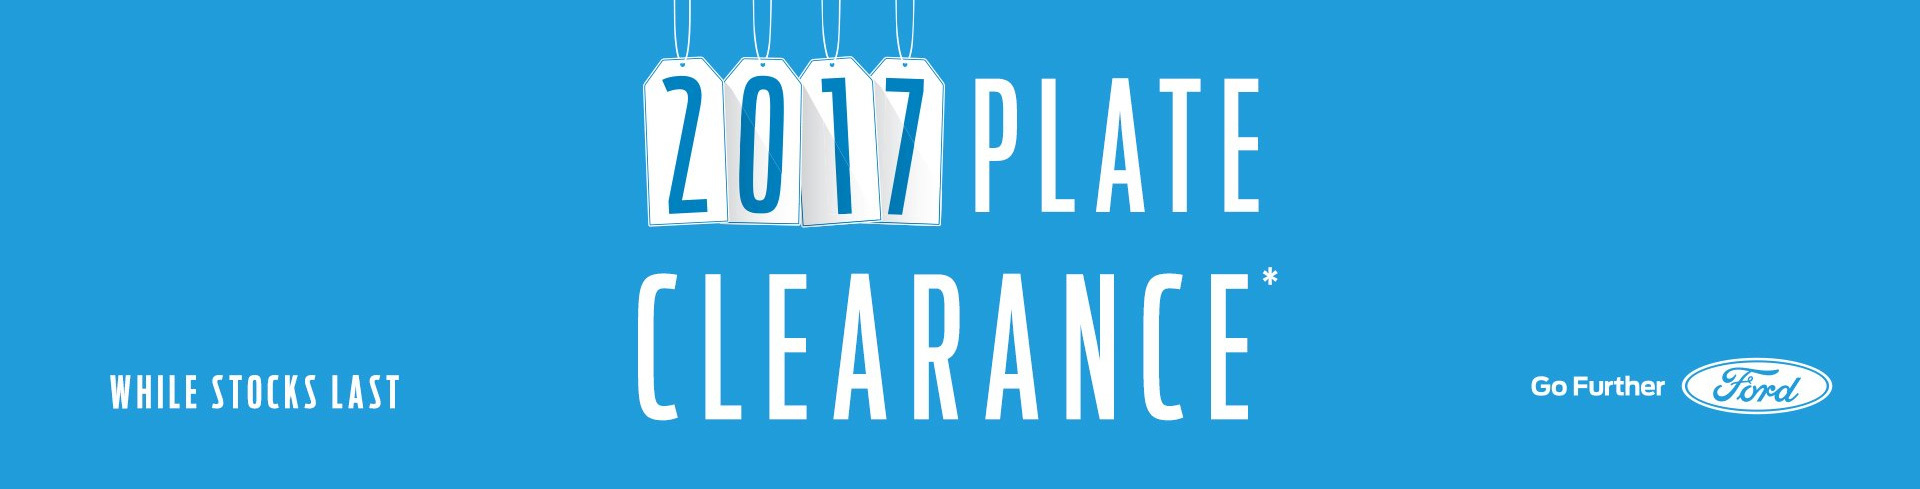 Ford - National Offer - 2017 Plate Clearance